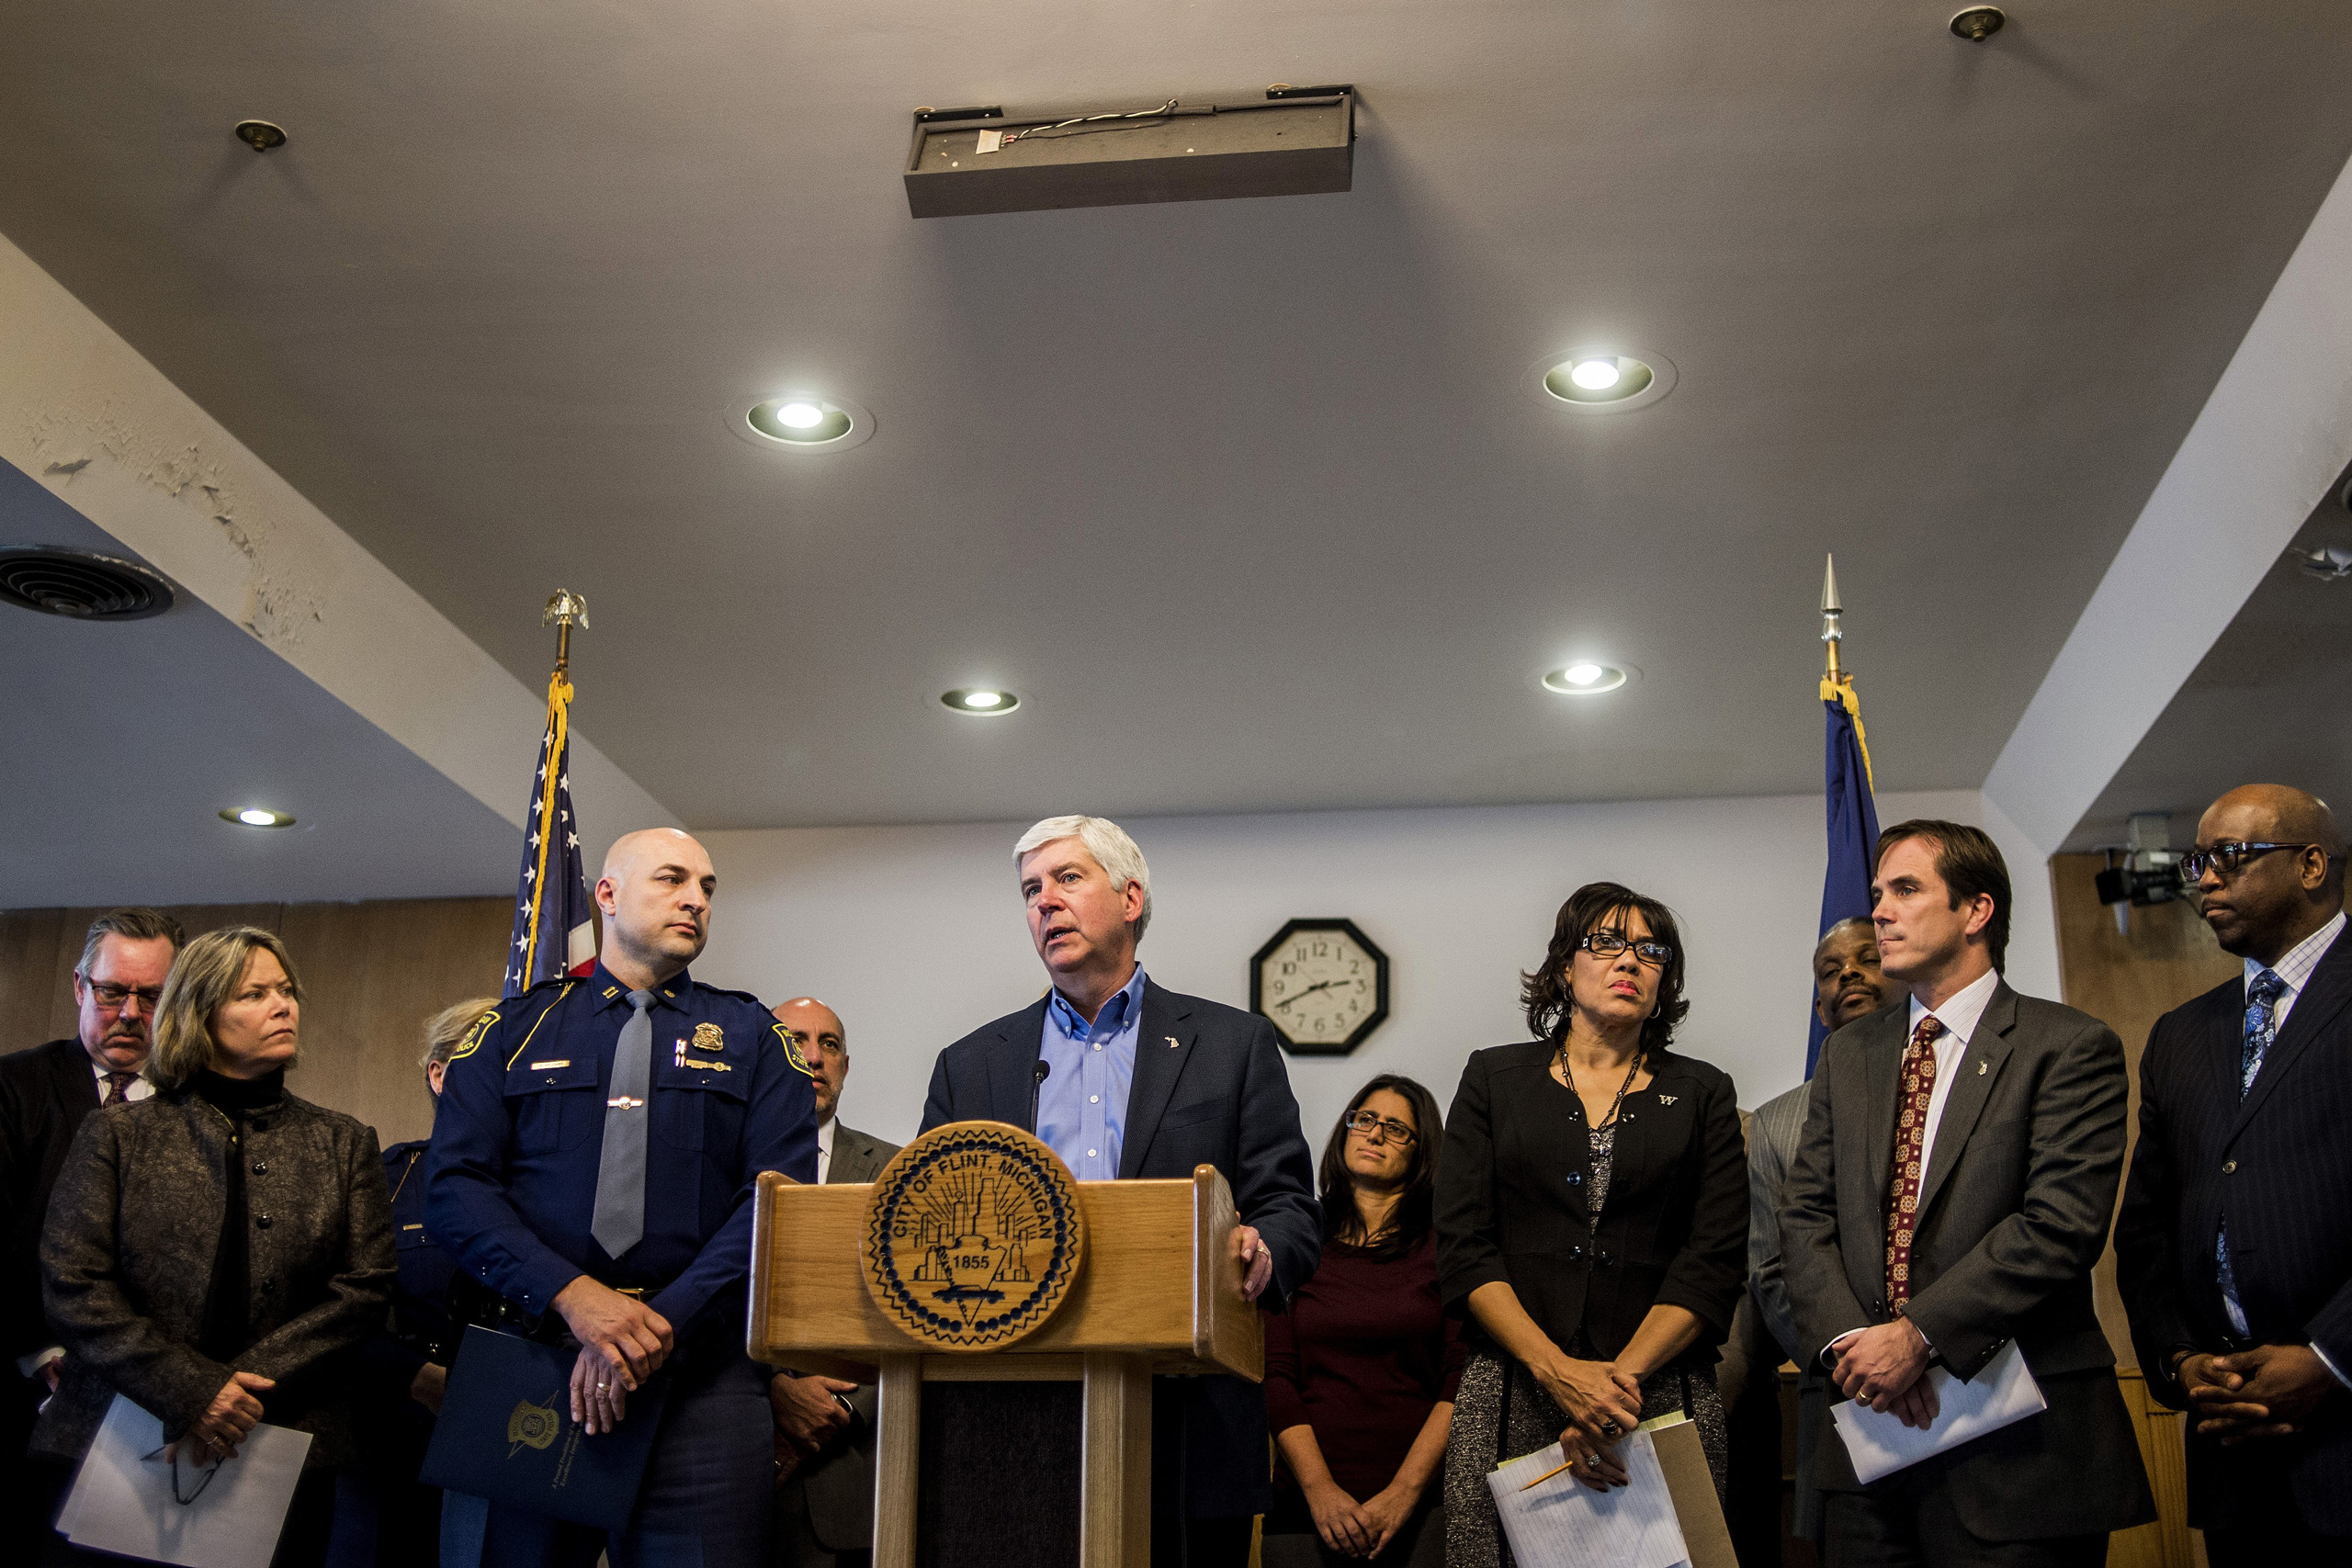 Michigan Gov. Rick Snyder speaks during a news conference in Flint, Mich., on Jan. 11, 2016.